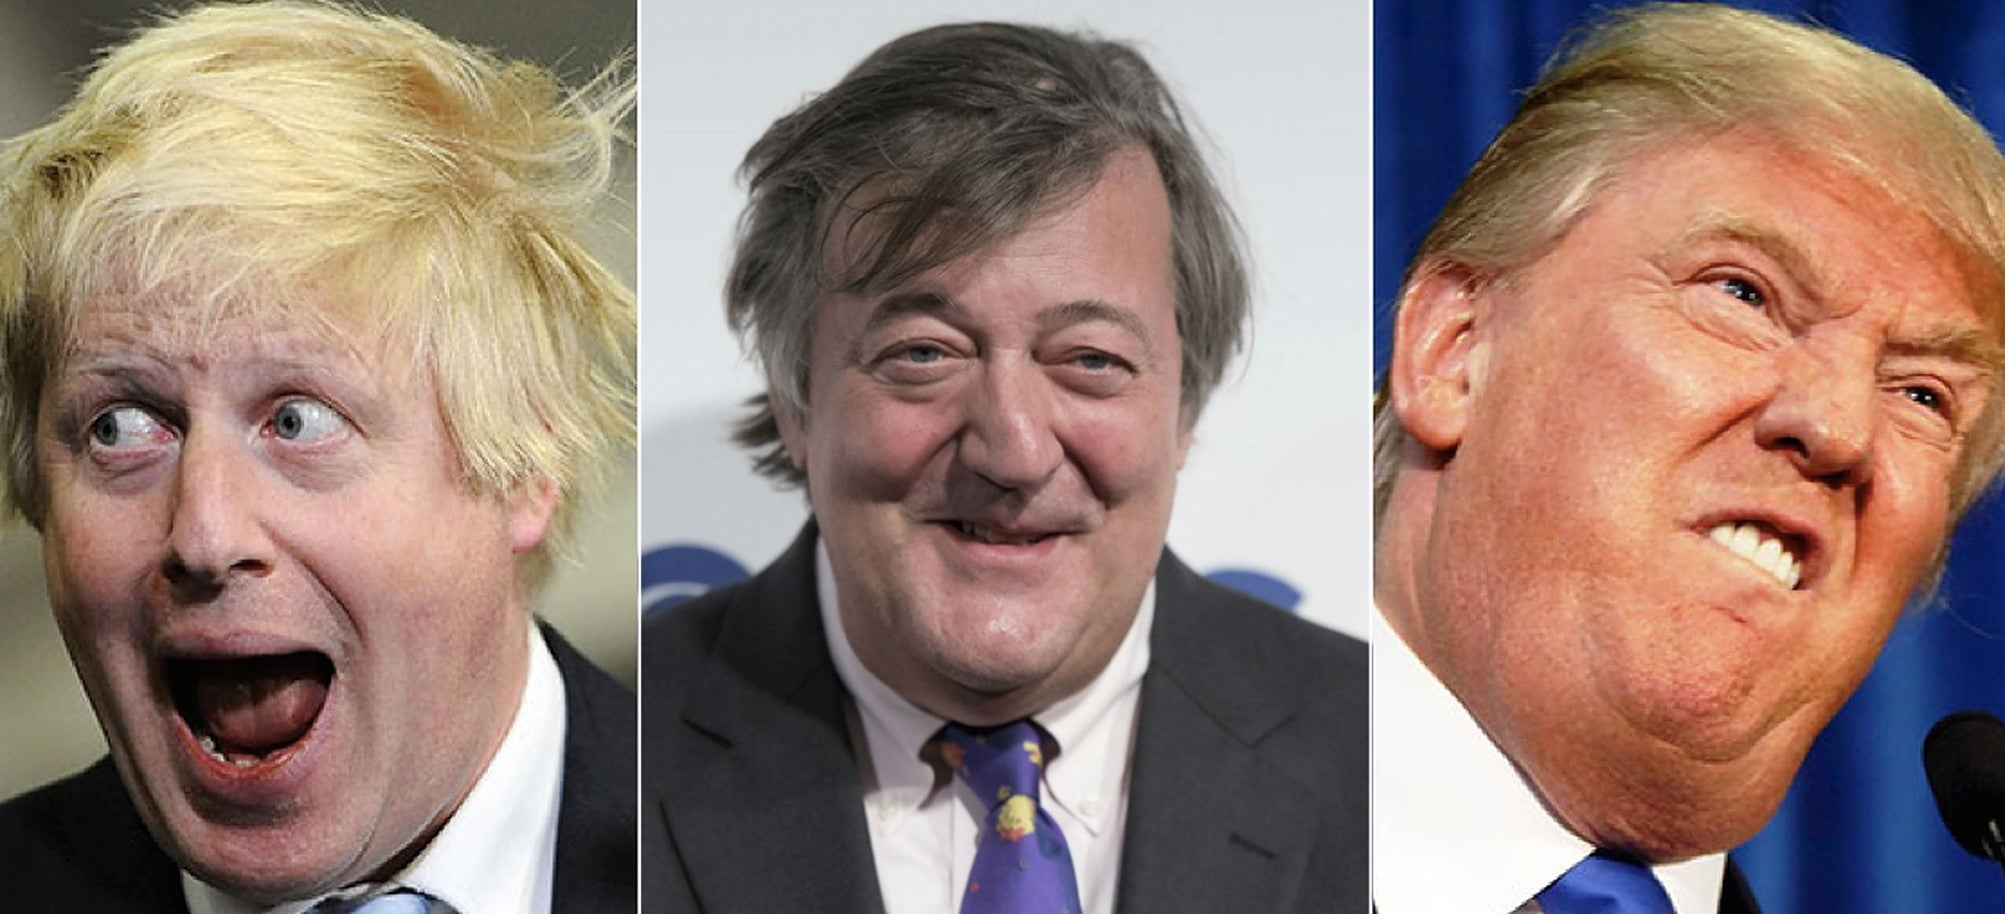 6 times Stephen Fry effortlessly stopped right wingers in their tracks with simple facts